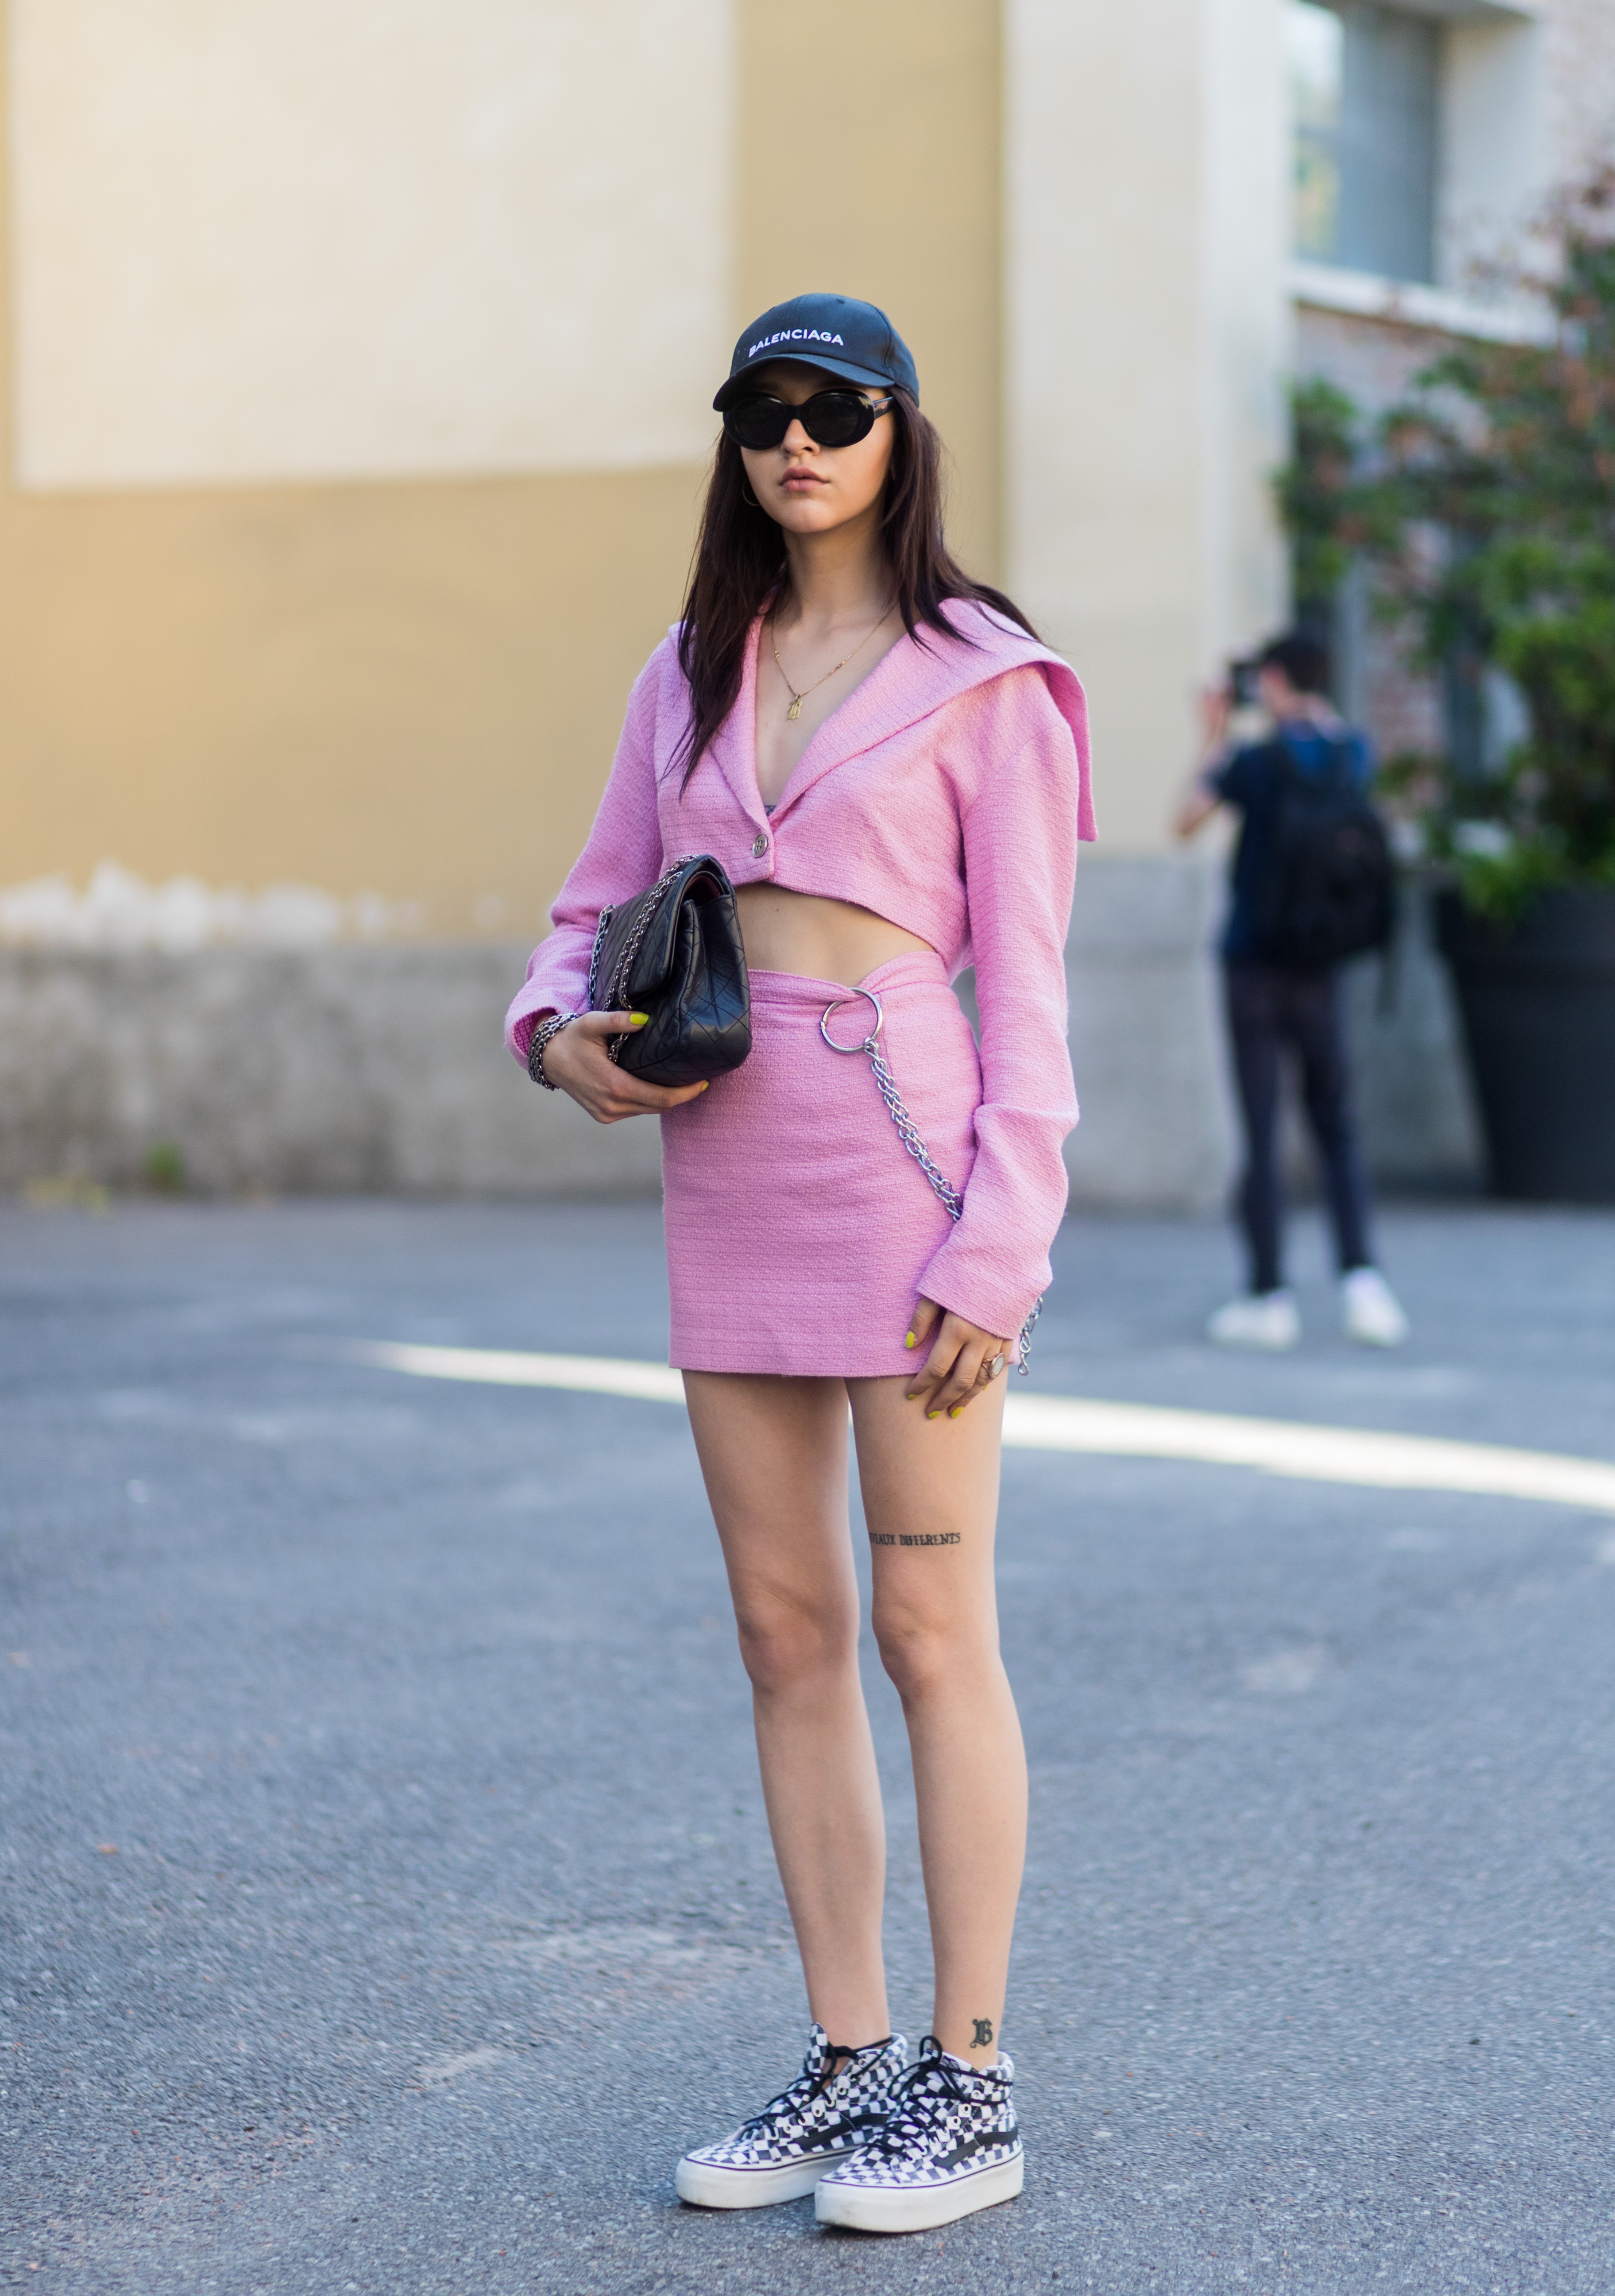 MILAN, ITALY - JUNE 19: A guest wearing a pink skirt, cropped jacket, Balenciaga cap, Chanel bag is seen outside Malibu 1992 during Milan Men's Fashion Week Spring/Summer 2018 on June 19, 2017 in Milan, Italy. (Photo by Christian Vierig/Getty Images)